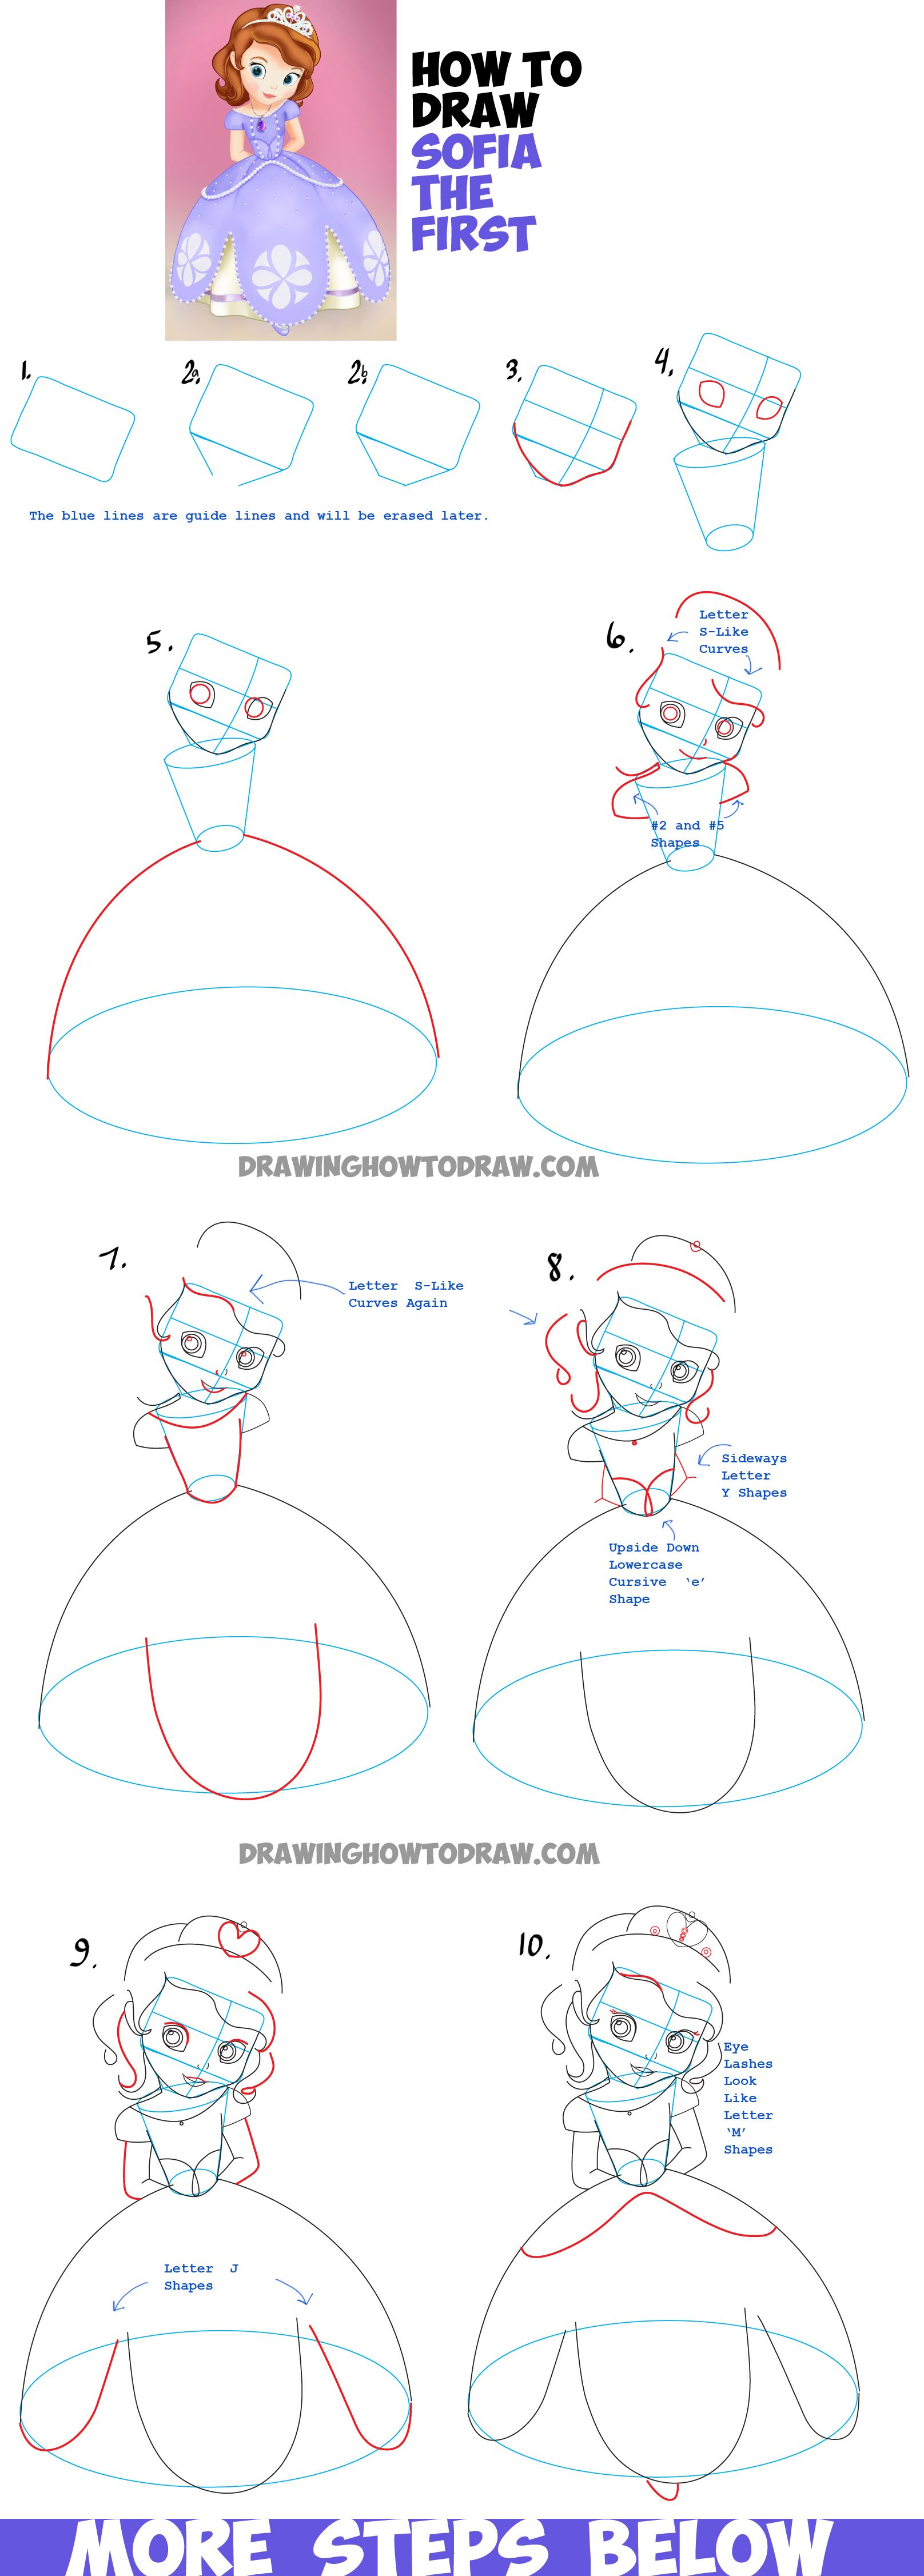 How To Draw Sofia From Sofia The First Easy Step By Step Drawing Tutorial How To Draw Step By Step Drawing Tutorials Disney Drawing Tutorial Disney Princess Drawings Drawing Tutorial